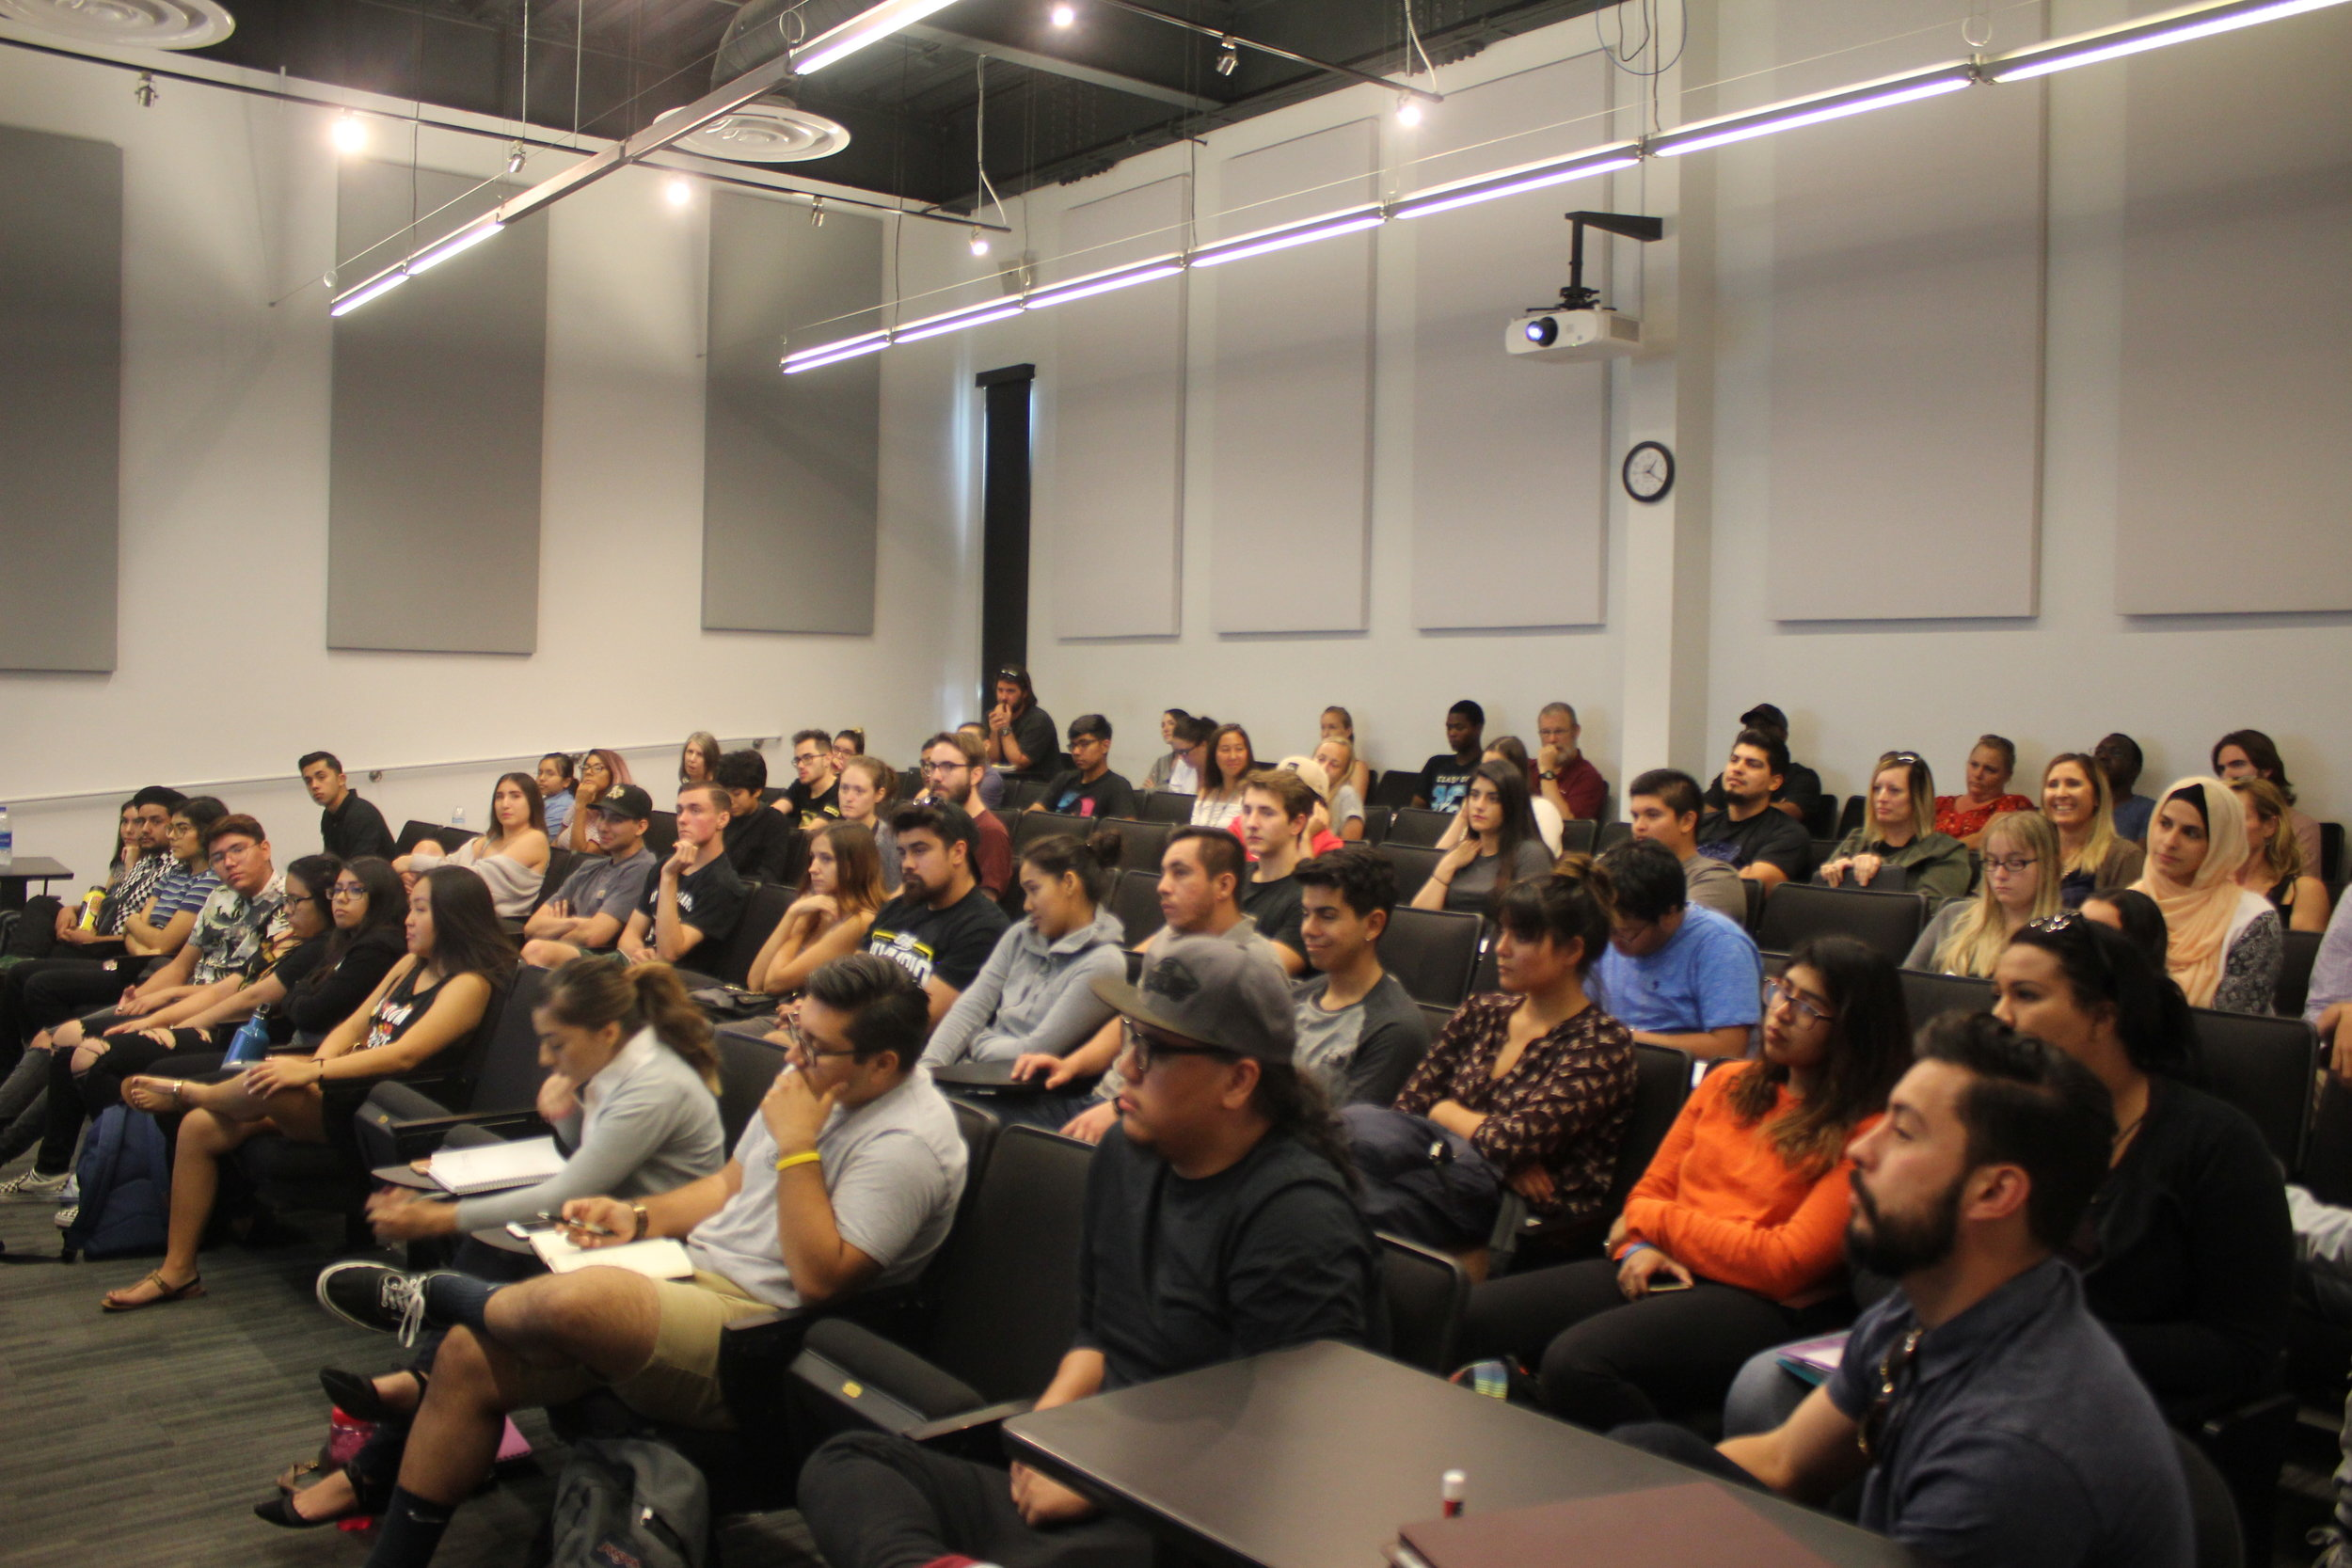 Students, faculty and staff attend the Violence Prevention Aftermath forum on October 18, 2017. Photo/Hector Solorzano.